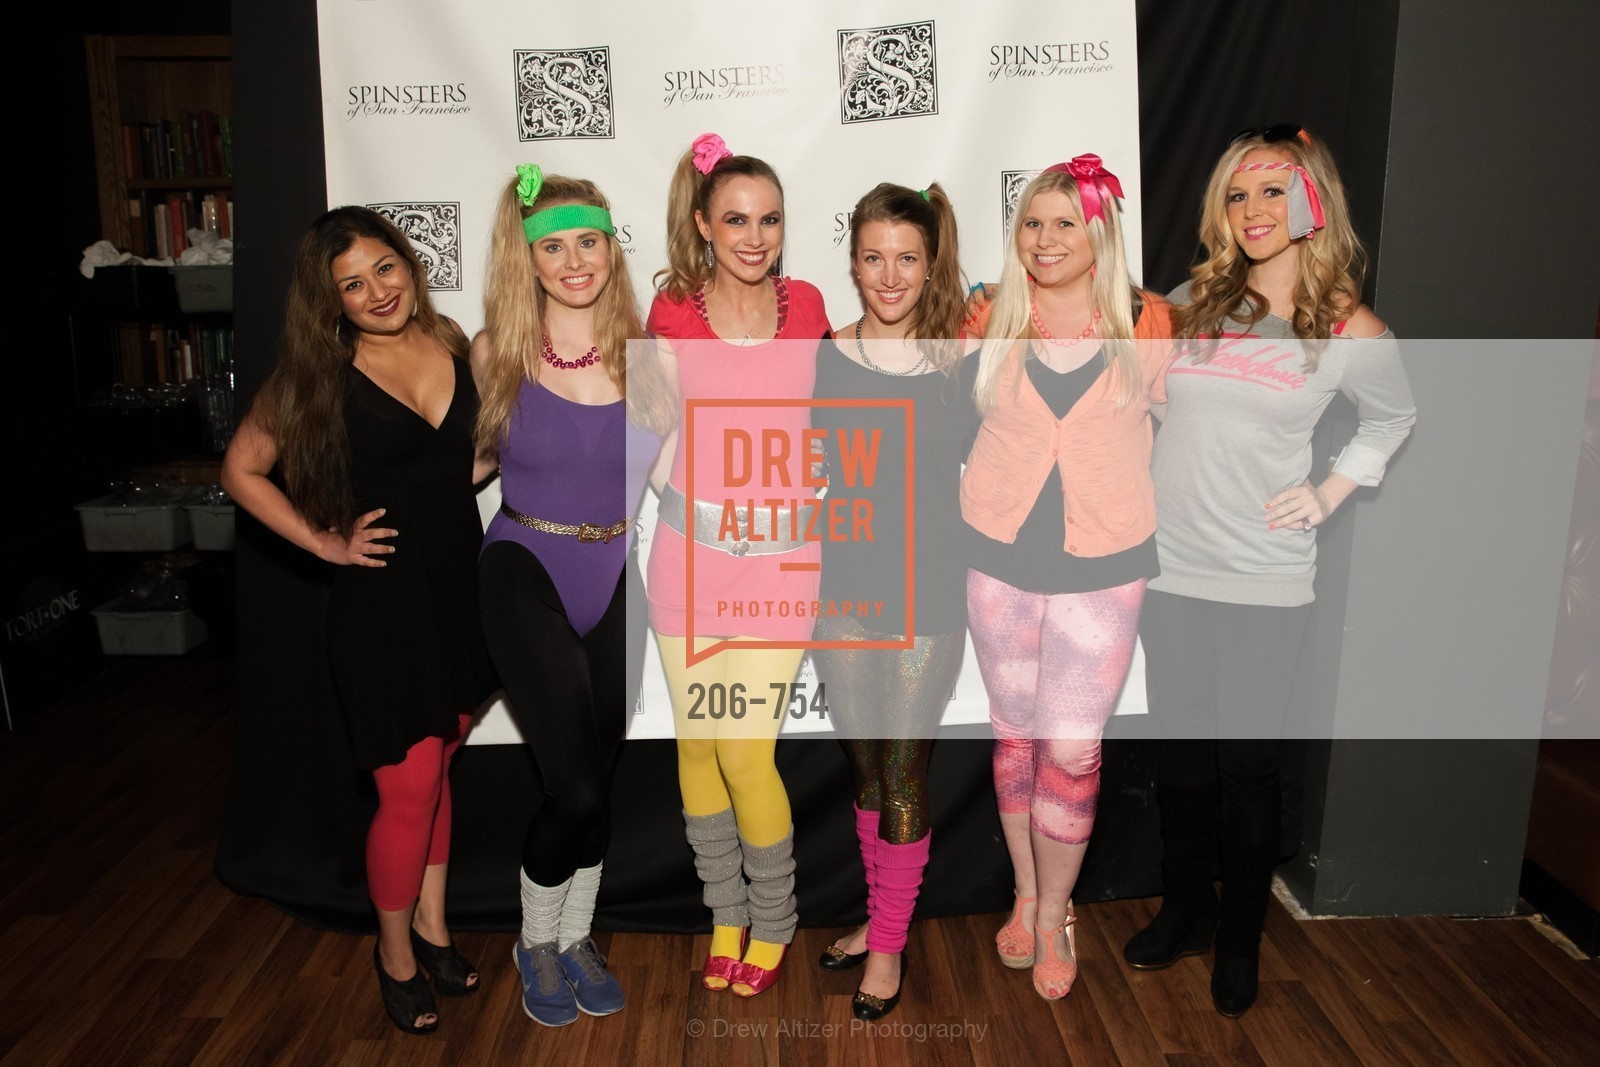 Priya Saiprasad, Elizabeth Sgarrella, Michelle Bertino, Julia Allyn, Summer McCormick, Cambria Steel, SPINSTERS OF SAN FRANCISCO Party Like It's 1985 Charity Party, US, May 29th, 2015,Drew Altizer, Drew Altizer Photography, full-service agency, private events, San Francisco photographer, photographer california